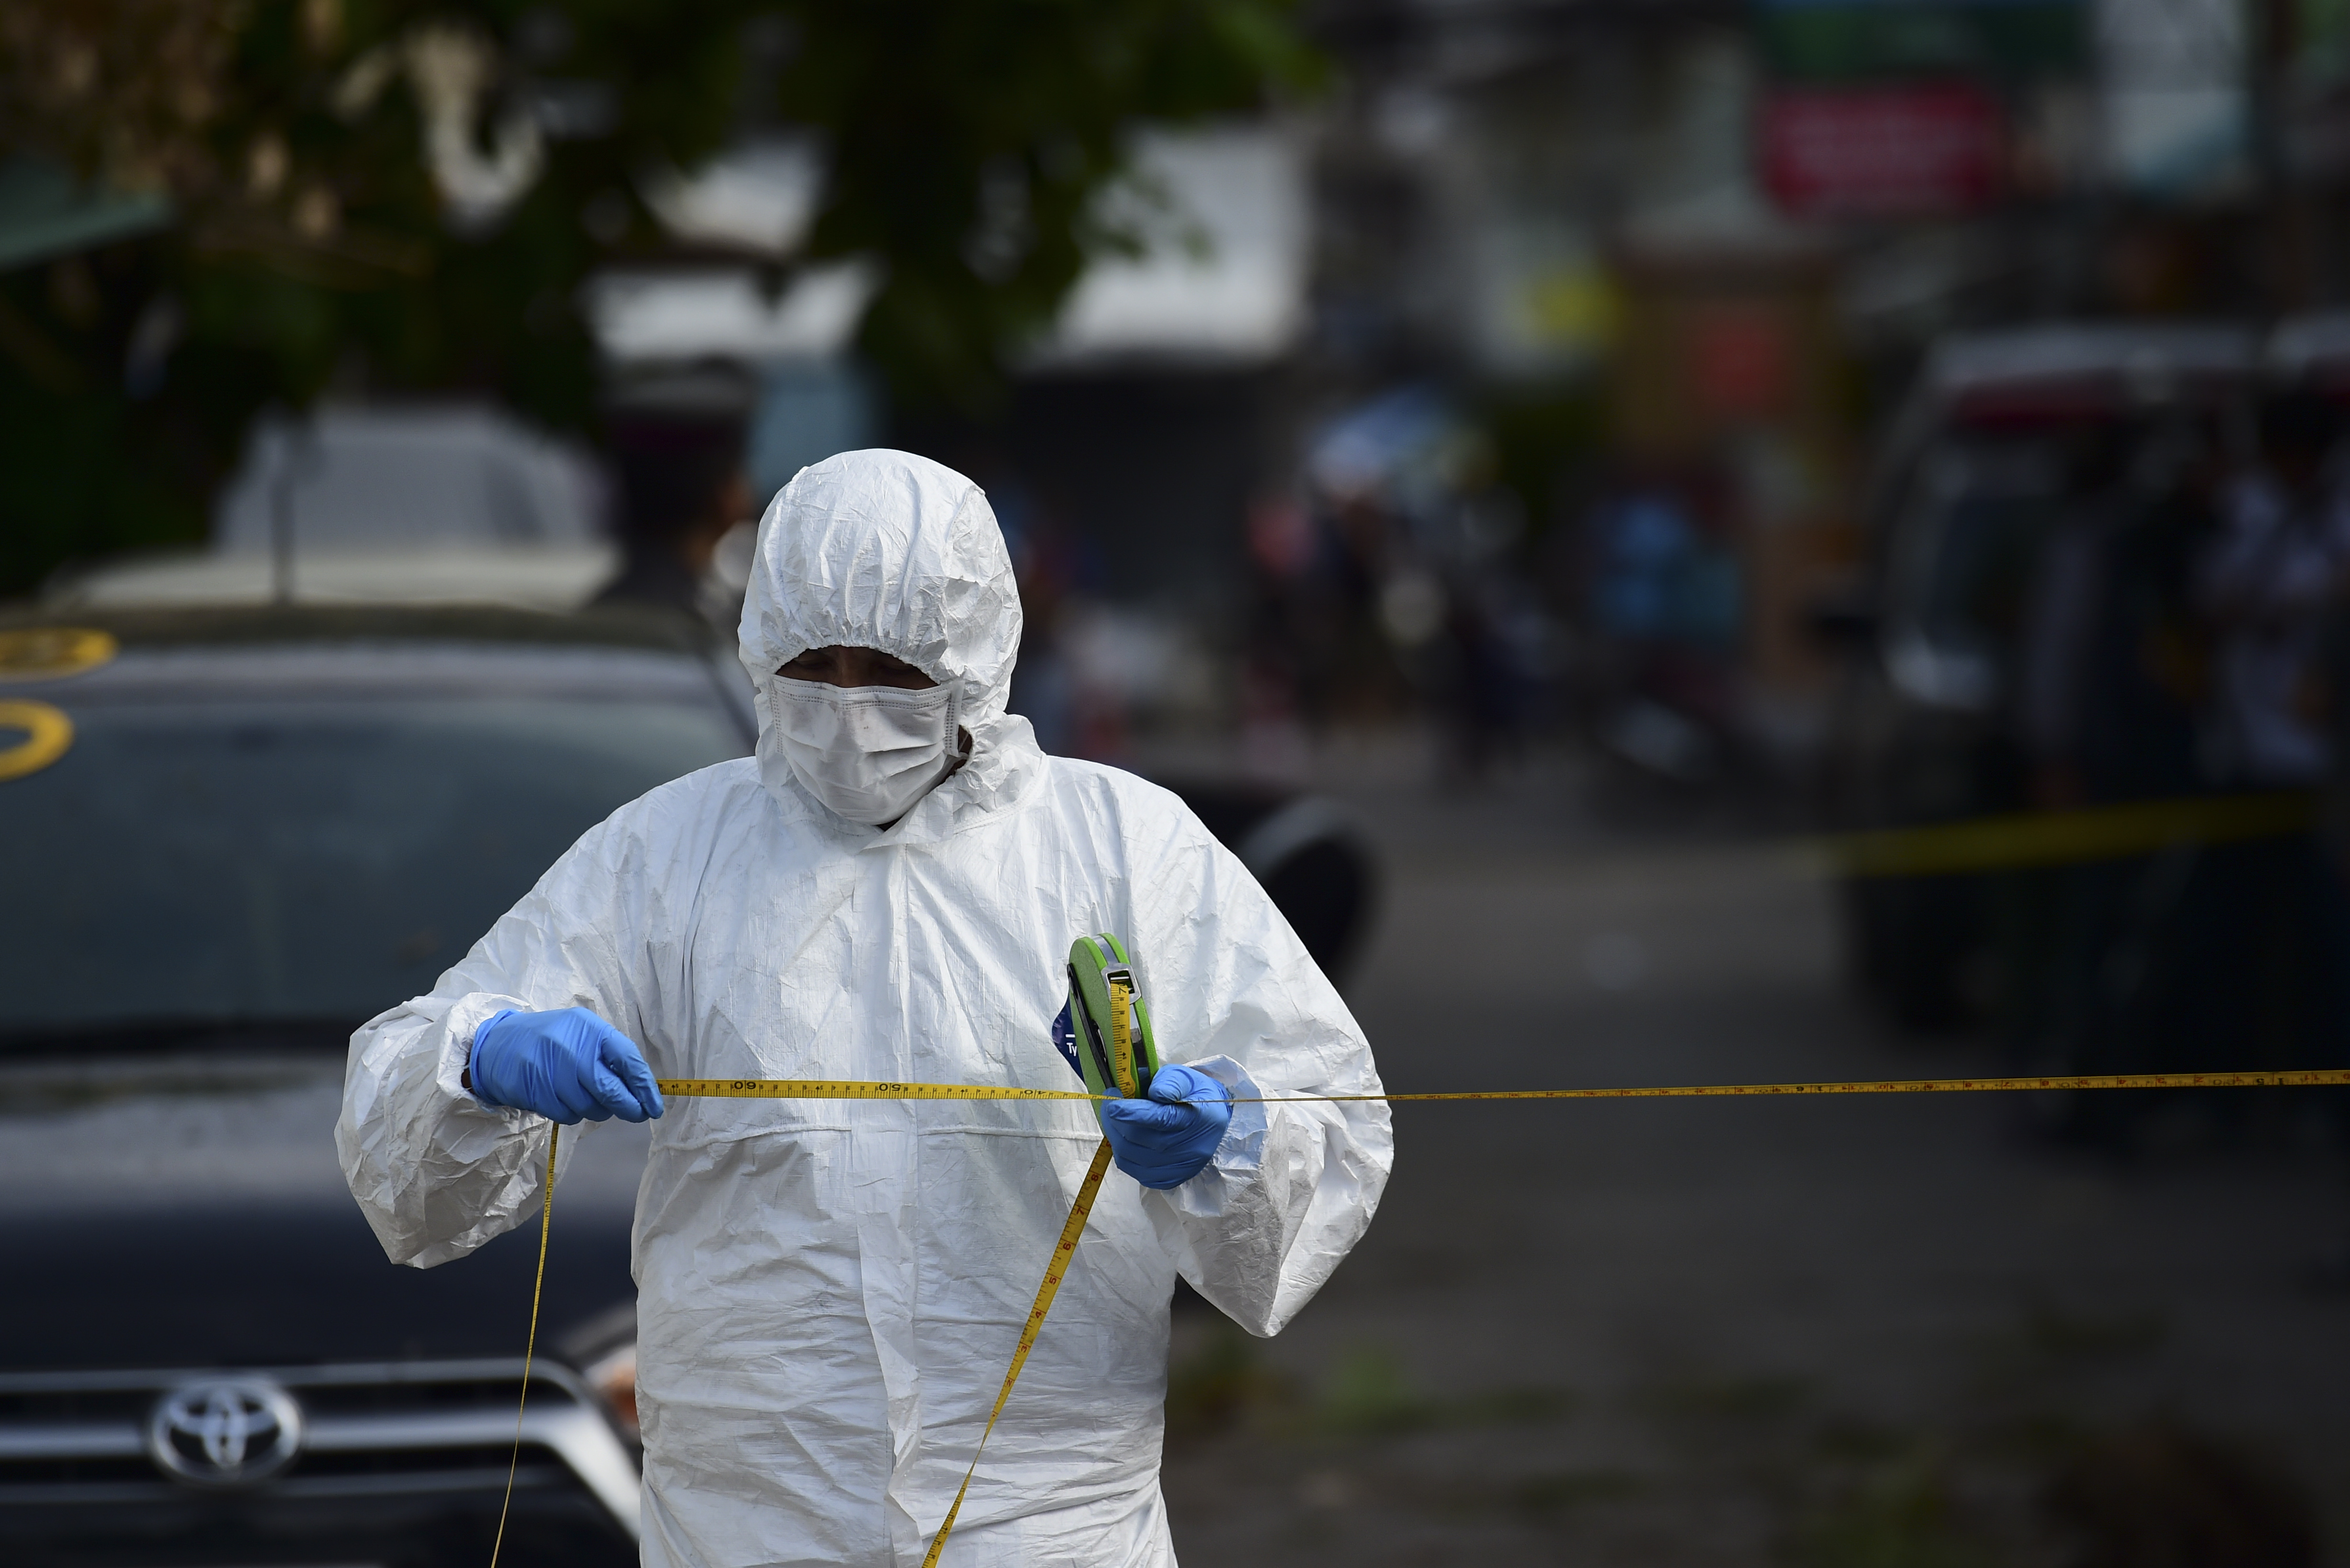 An investigation official collects evidence from the crime scene after a small bomb exploded in Hua Hin, Thailand, on Aug. 12, 2016